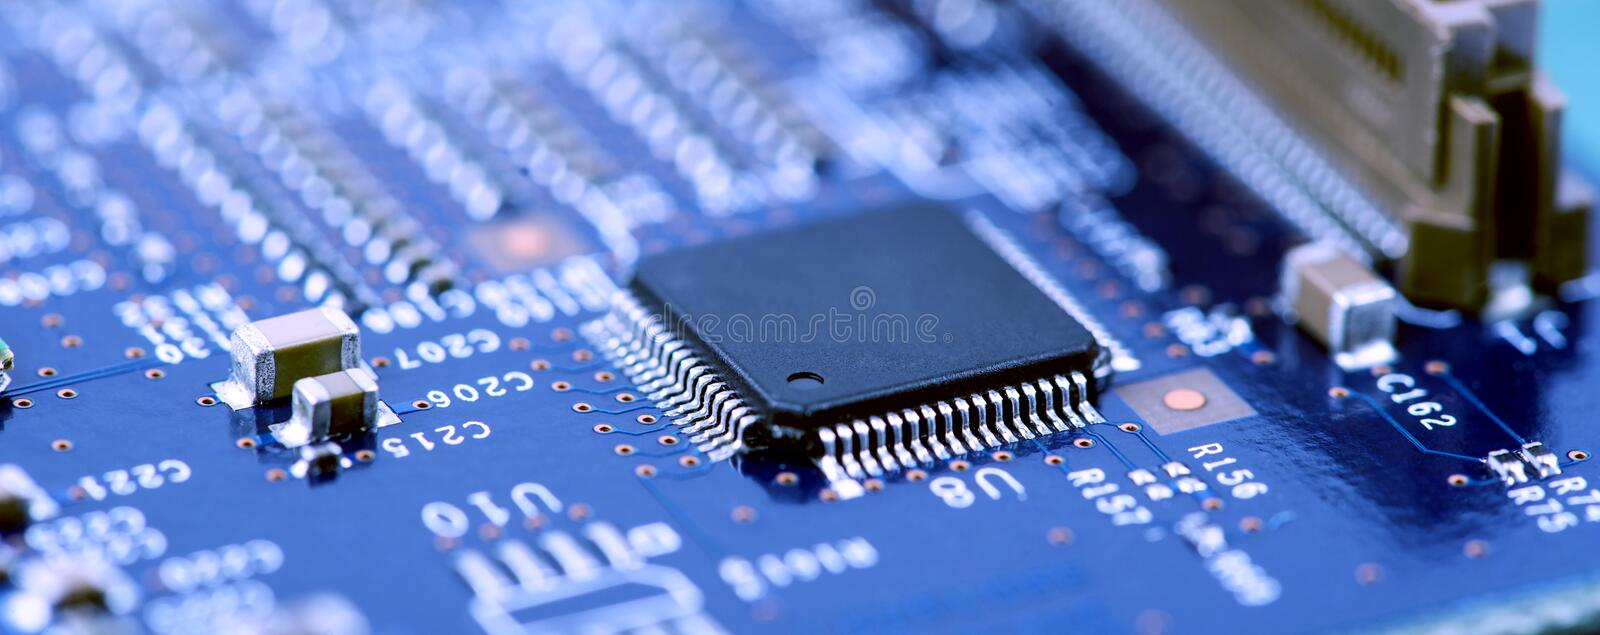 High Tech Circuit Board close up, macro. concept of information technology royalty free stock photography